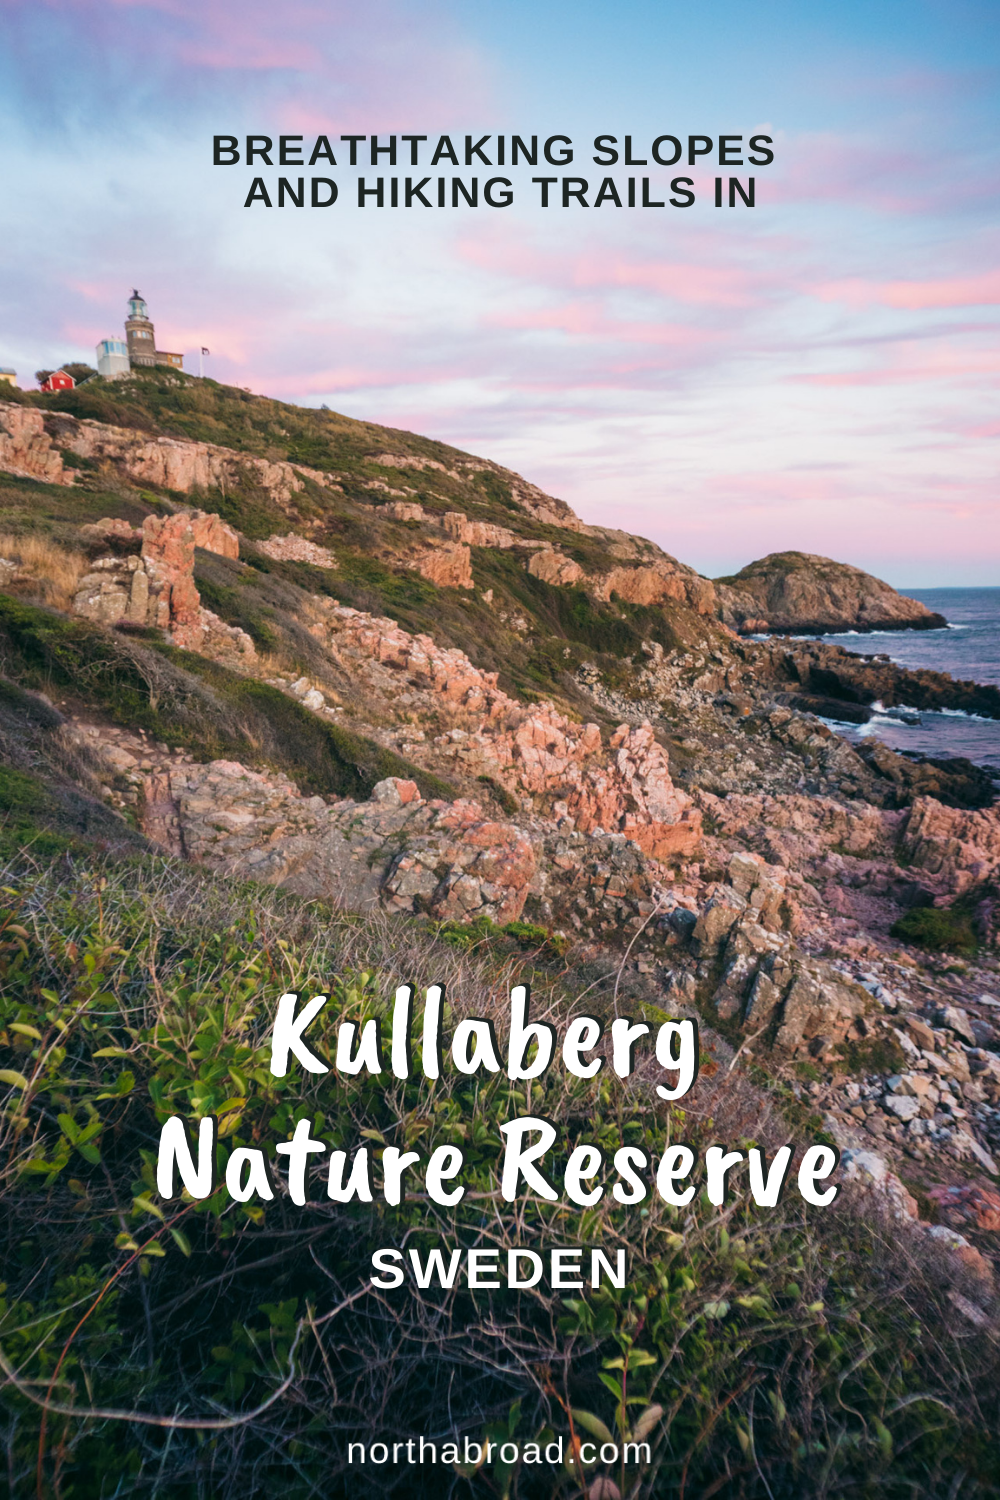 Mölle and Kullaberg Nature Reserve in Sweden